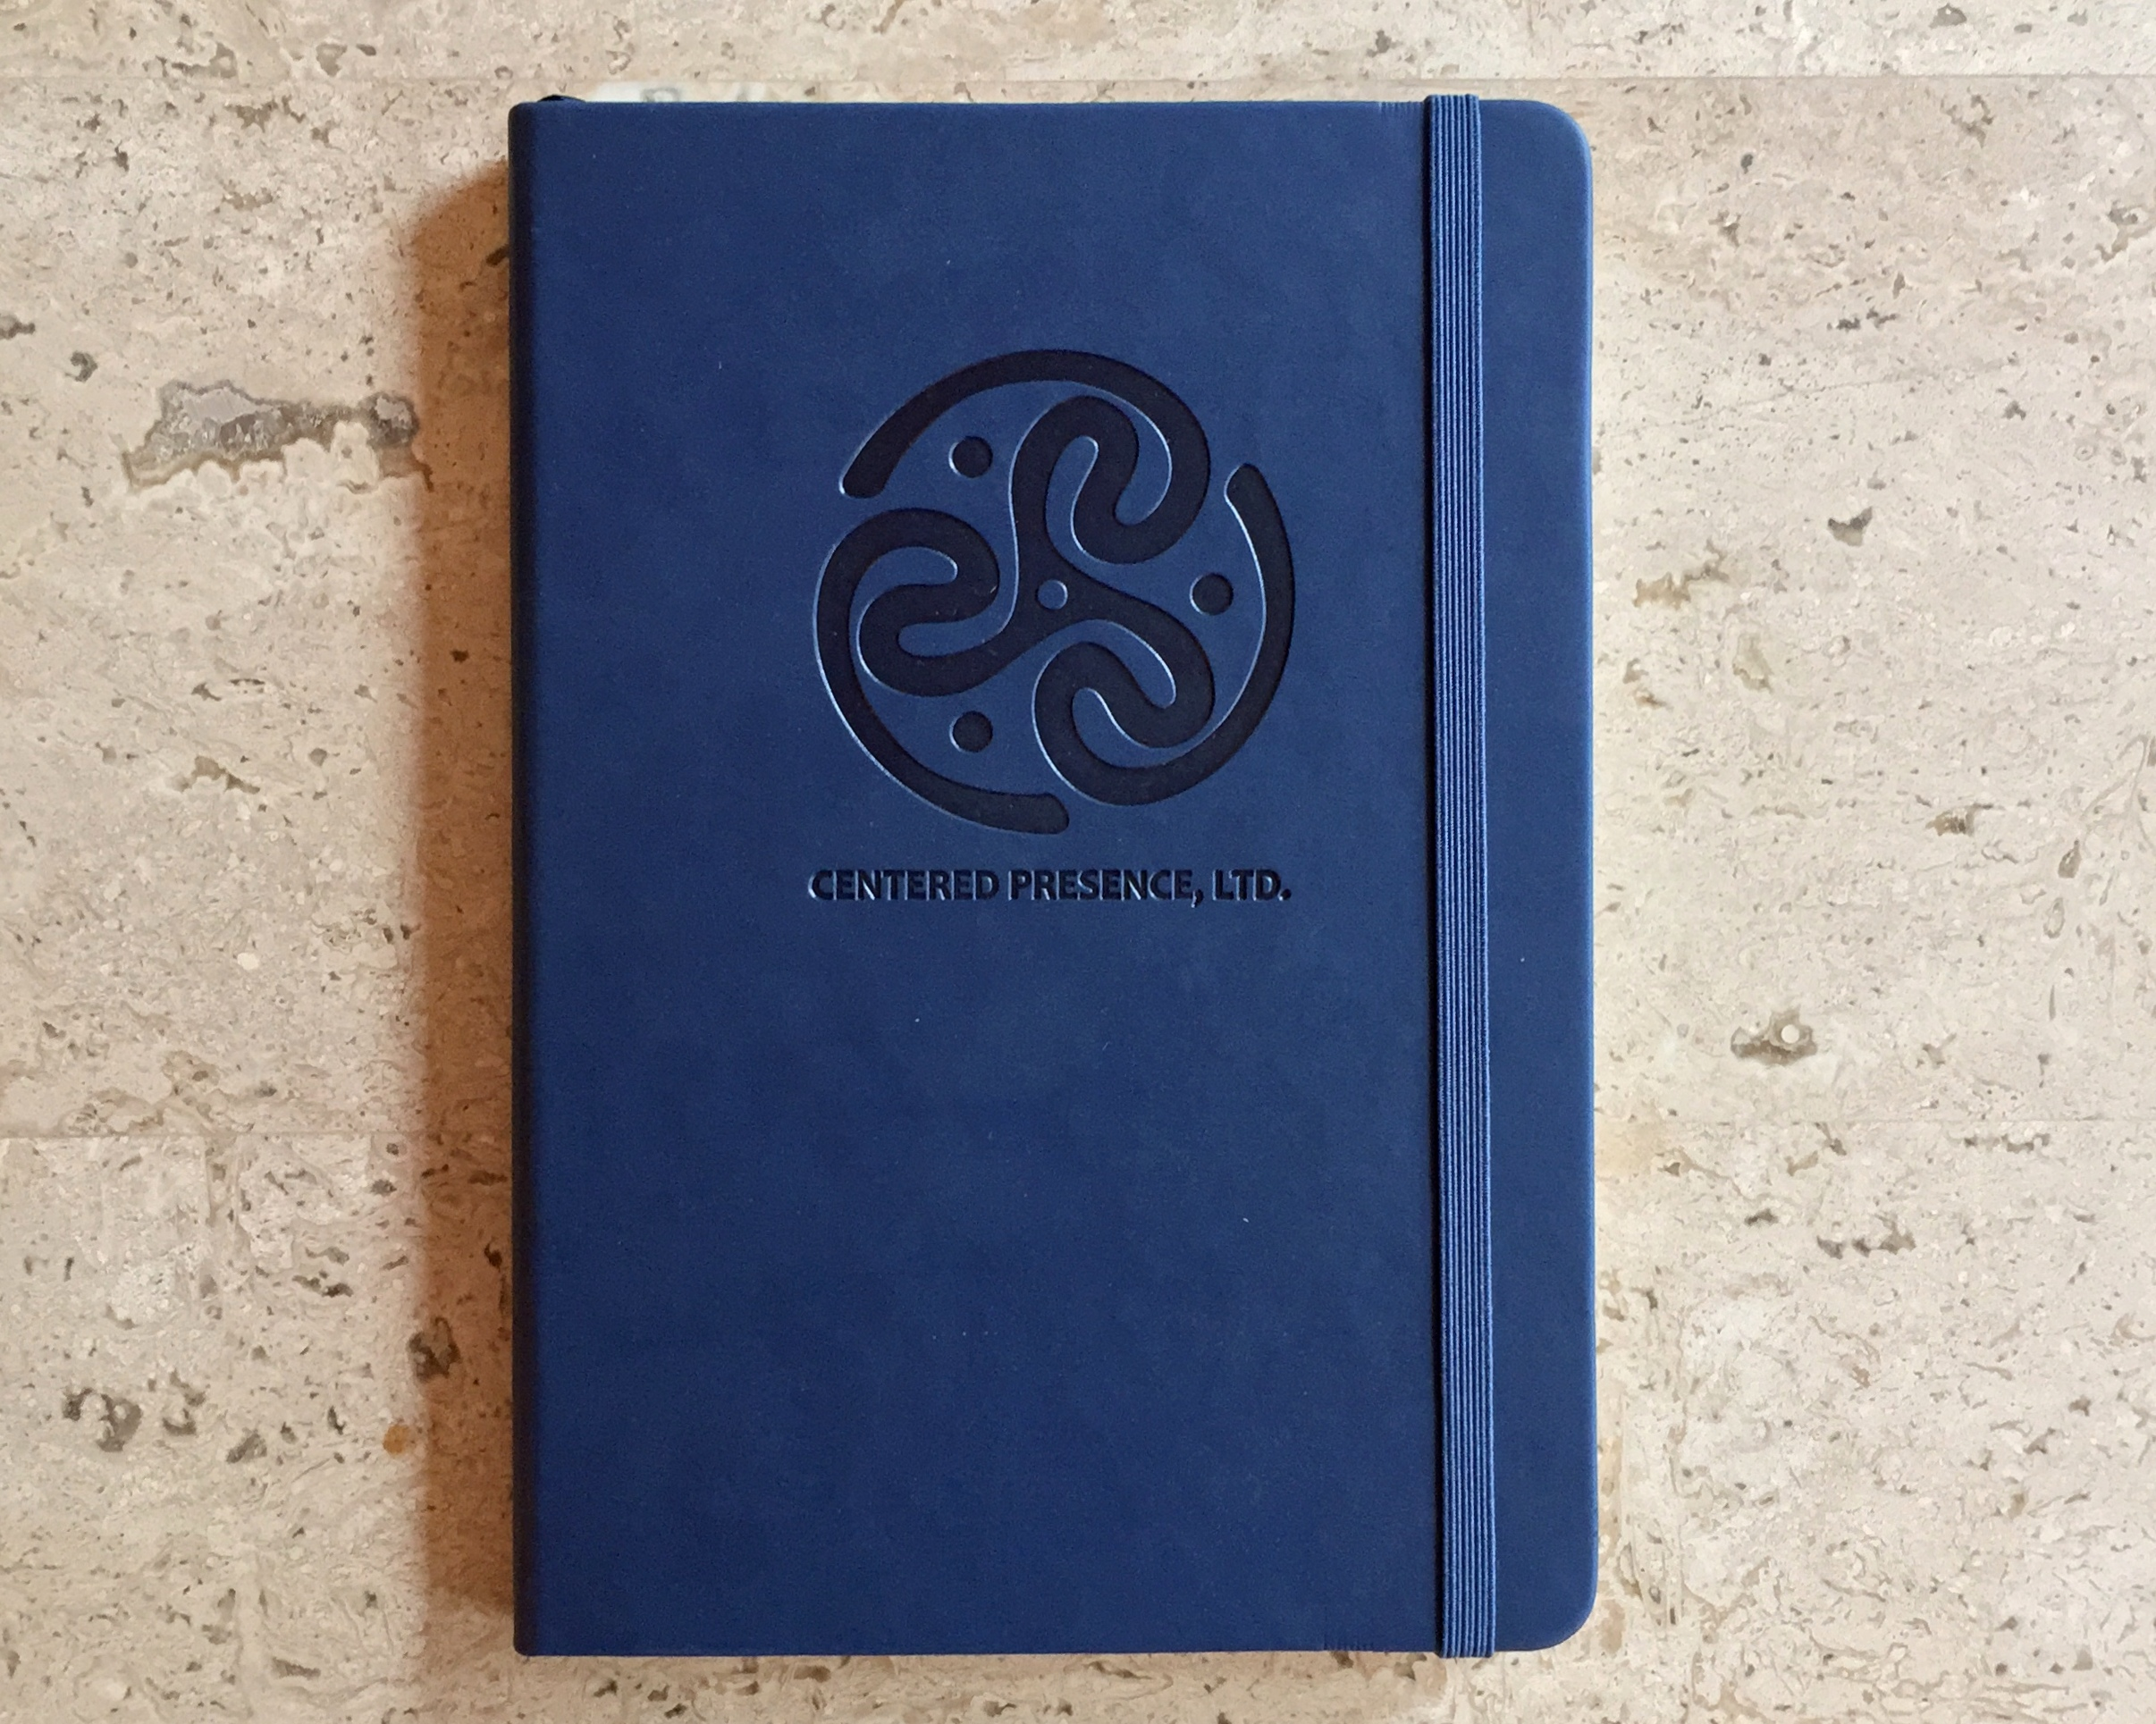 Centered-presence-blue-journal-closed.JPG